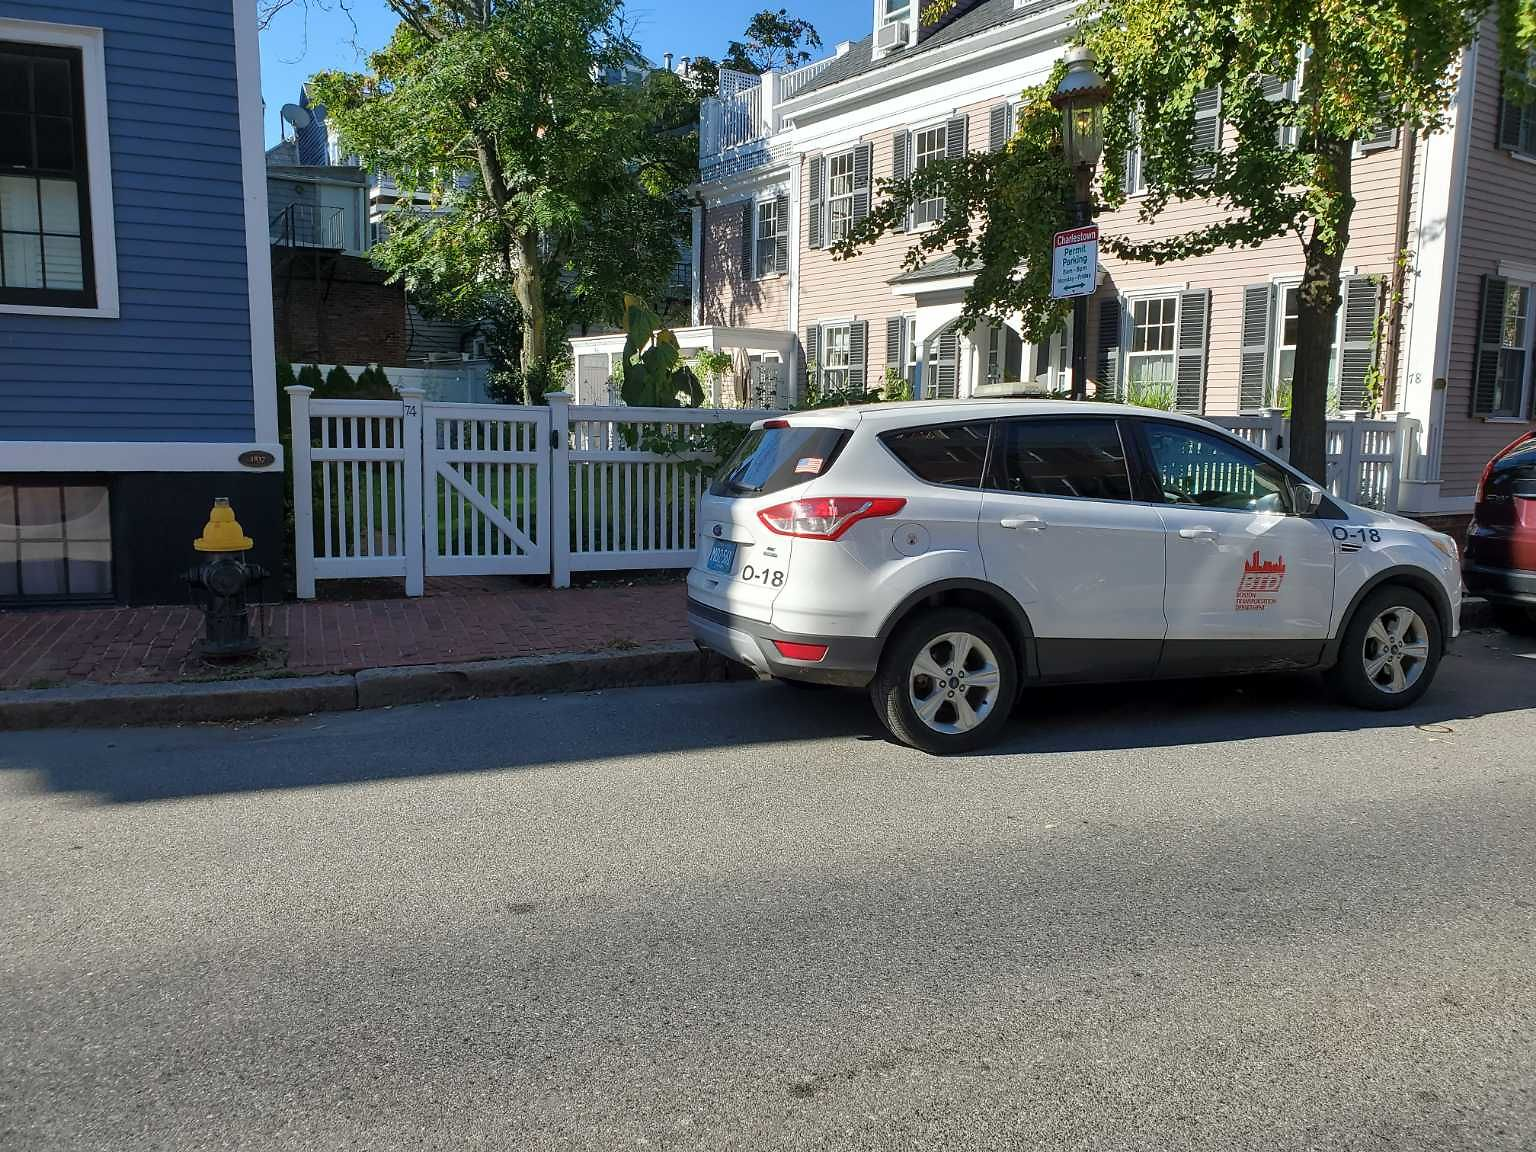 Illegally parked, parking ticket persons car...